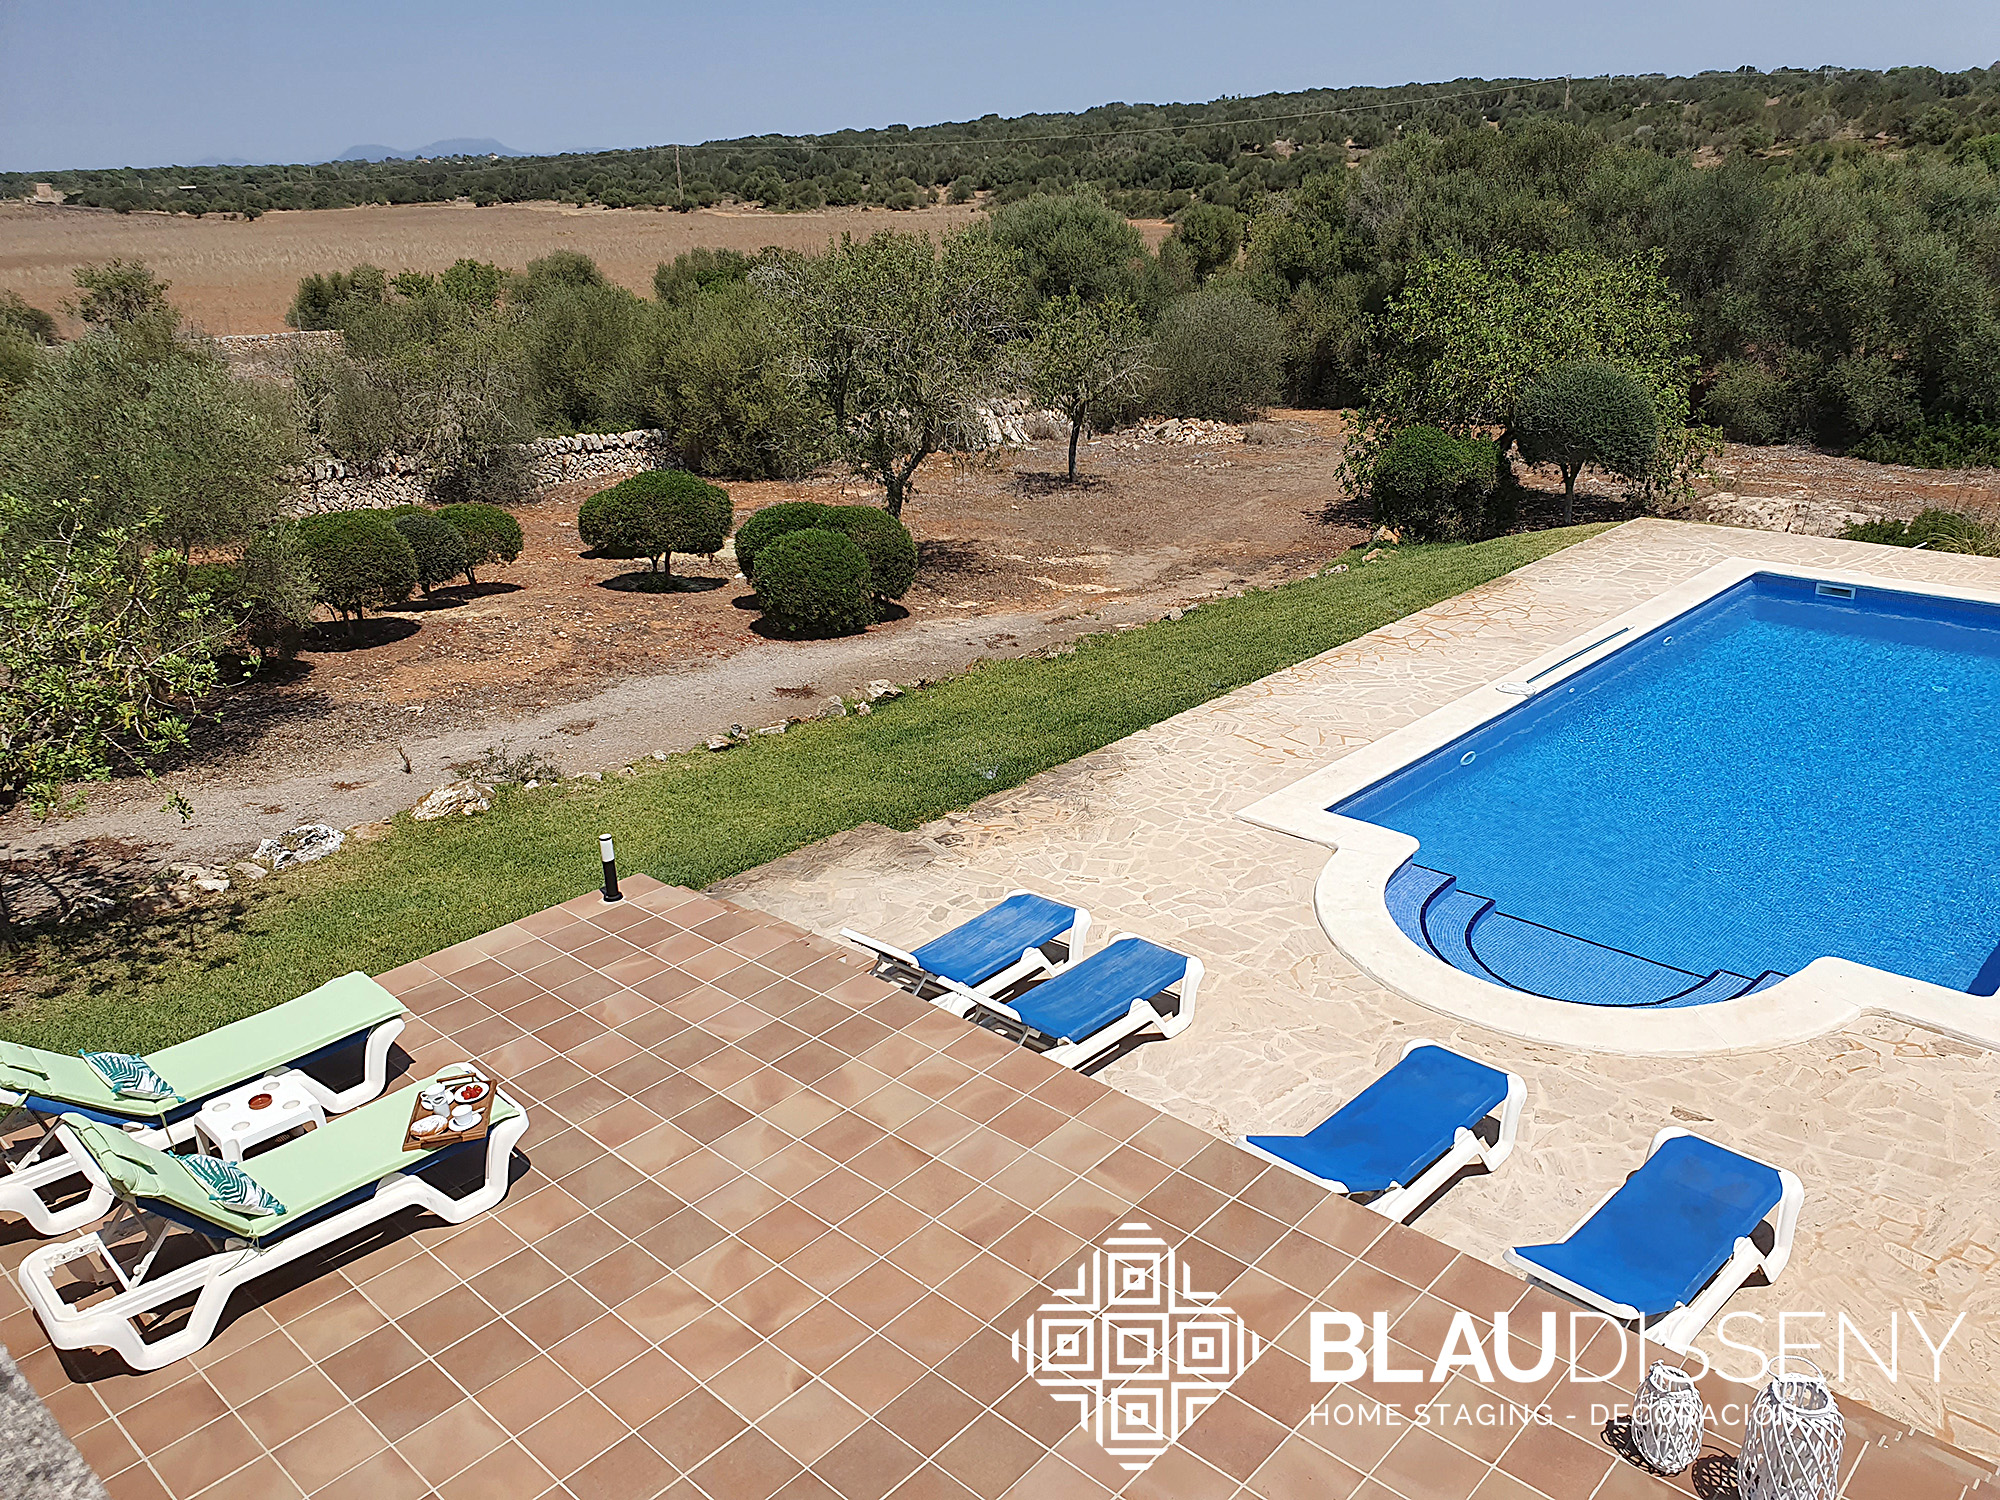 Blaudisseny-home-staging-ses-salines-piscina-2-despues-logo